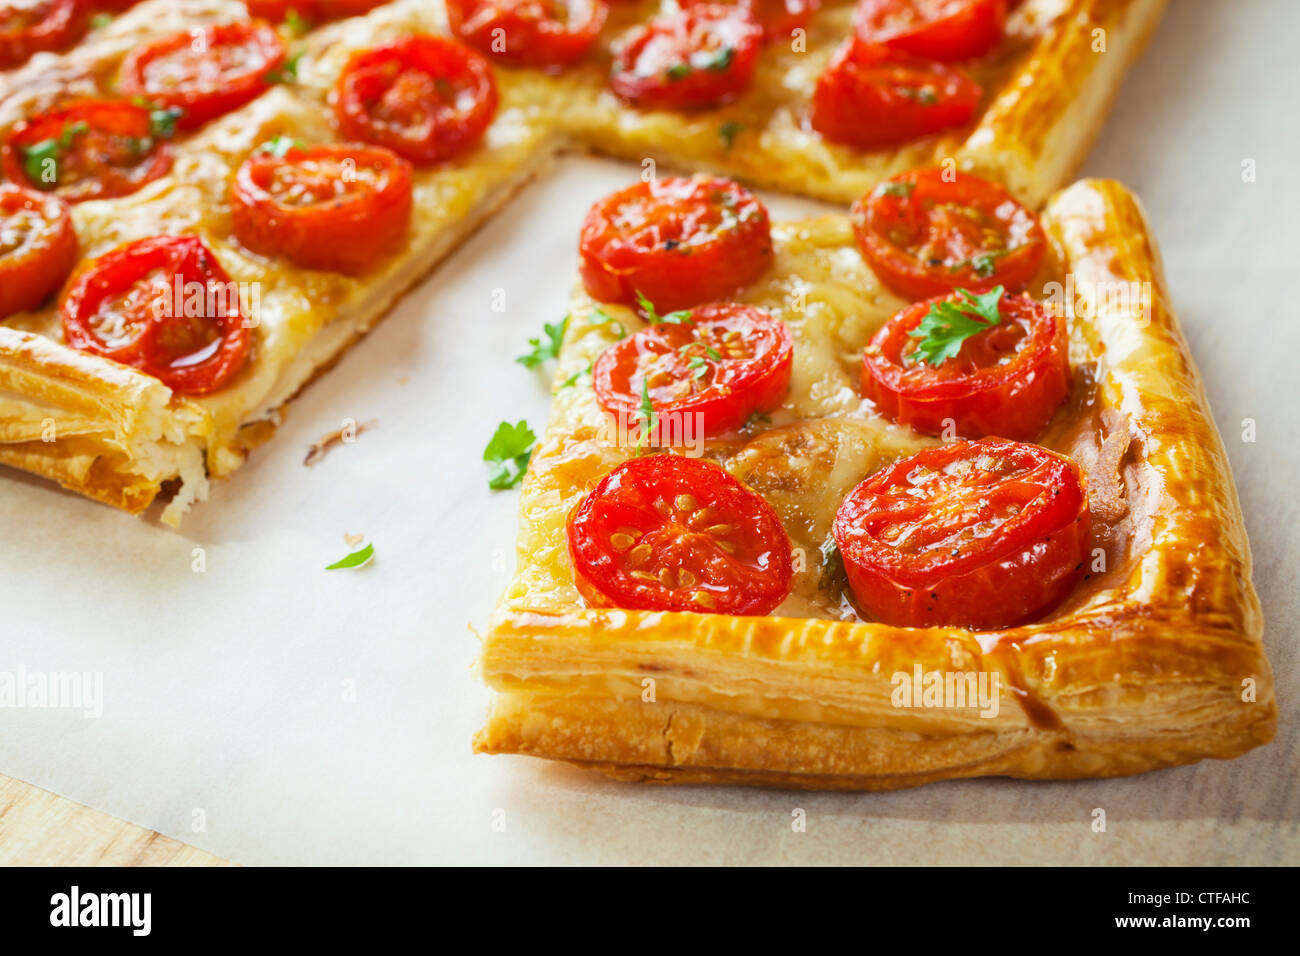 Tomato tart, puff pastry topped with mustard, cheese and cherry toamtoes. - Stock Image